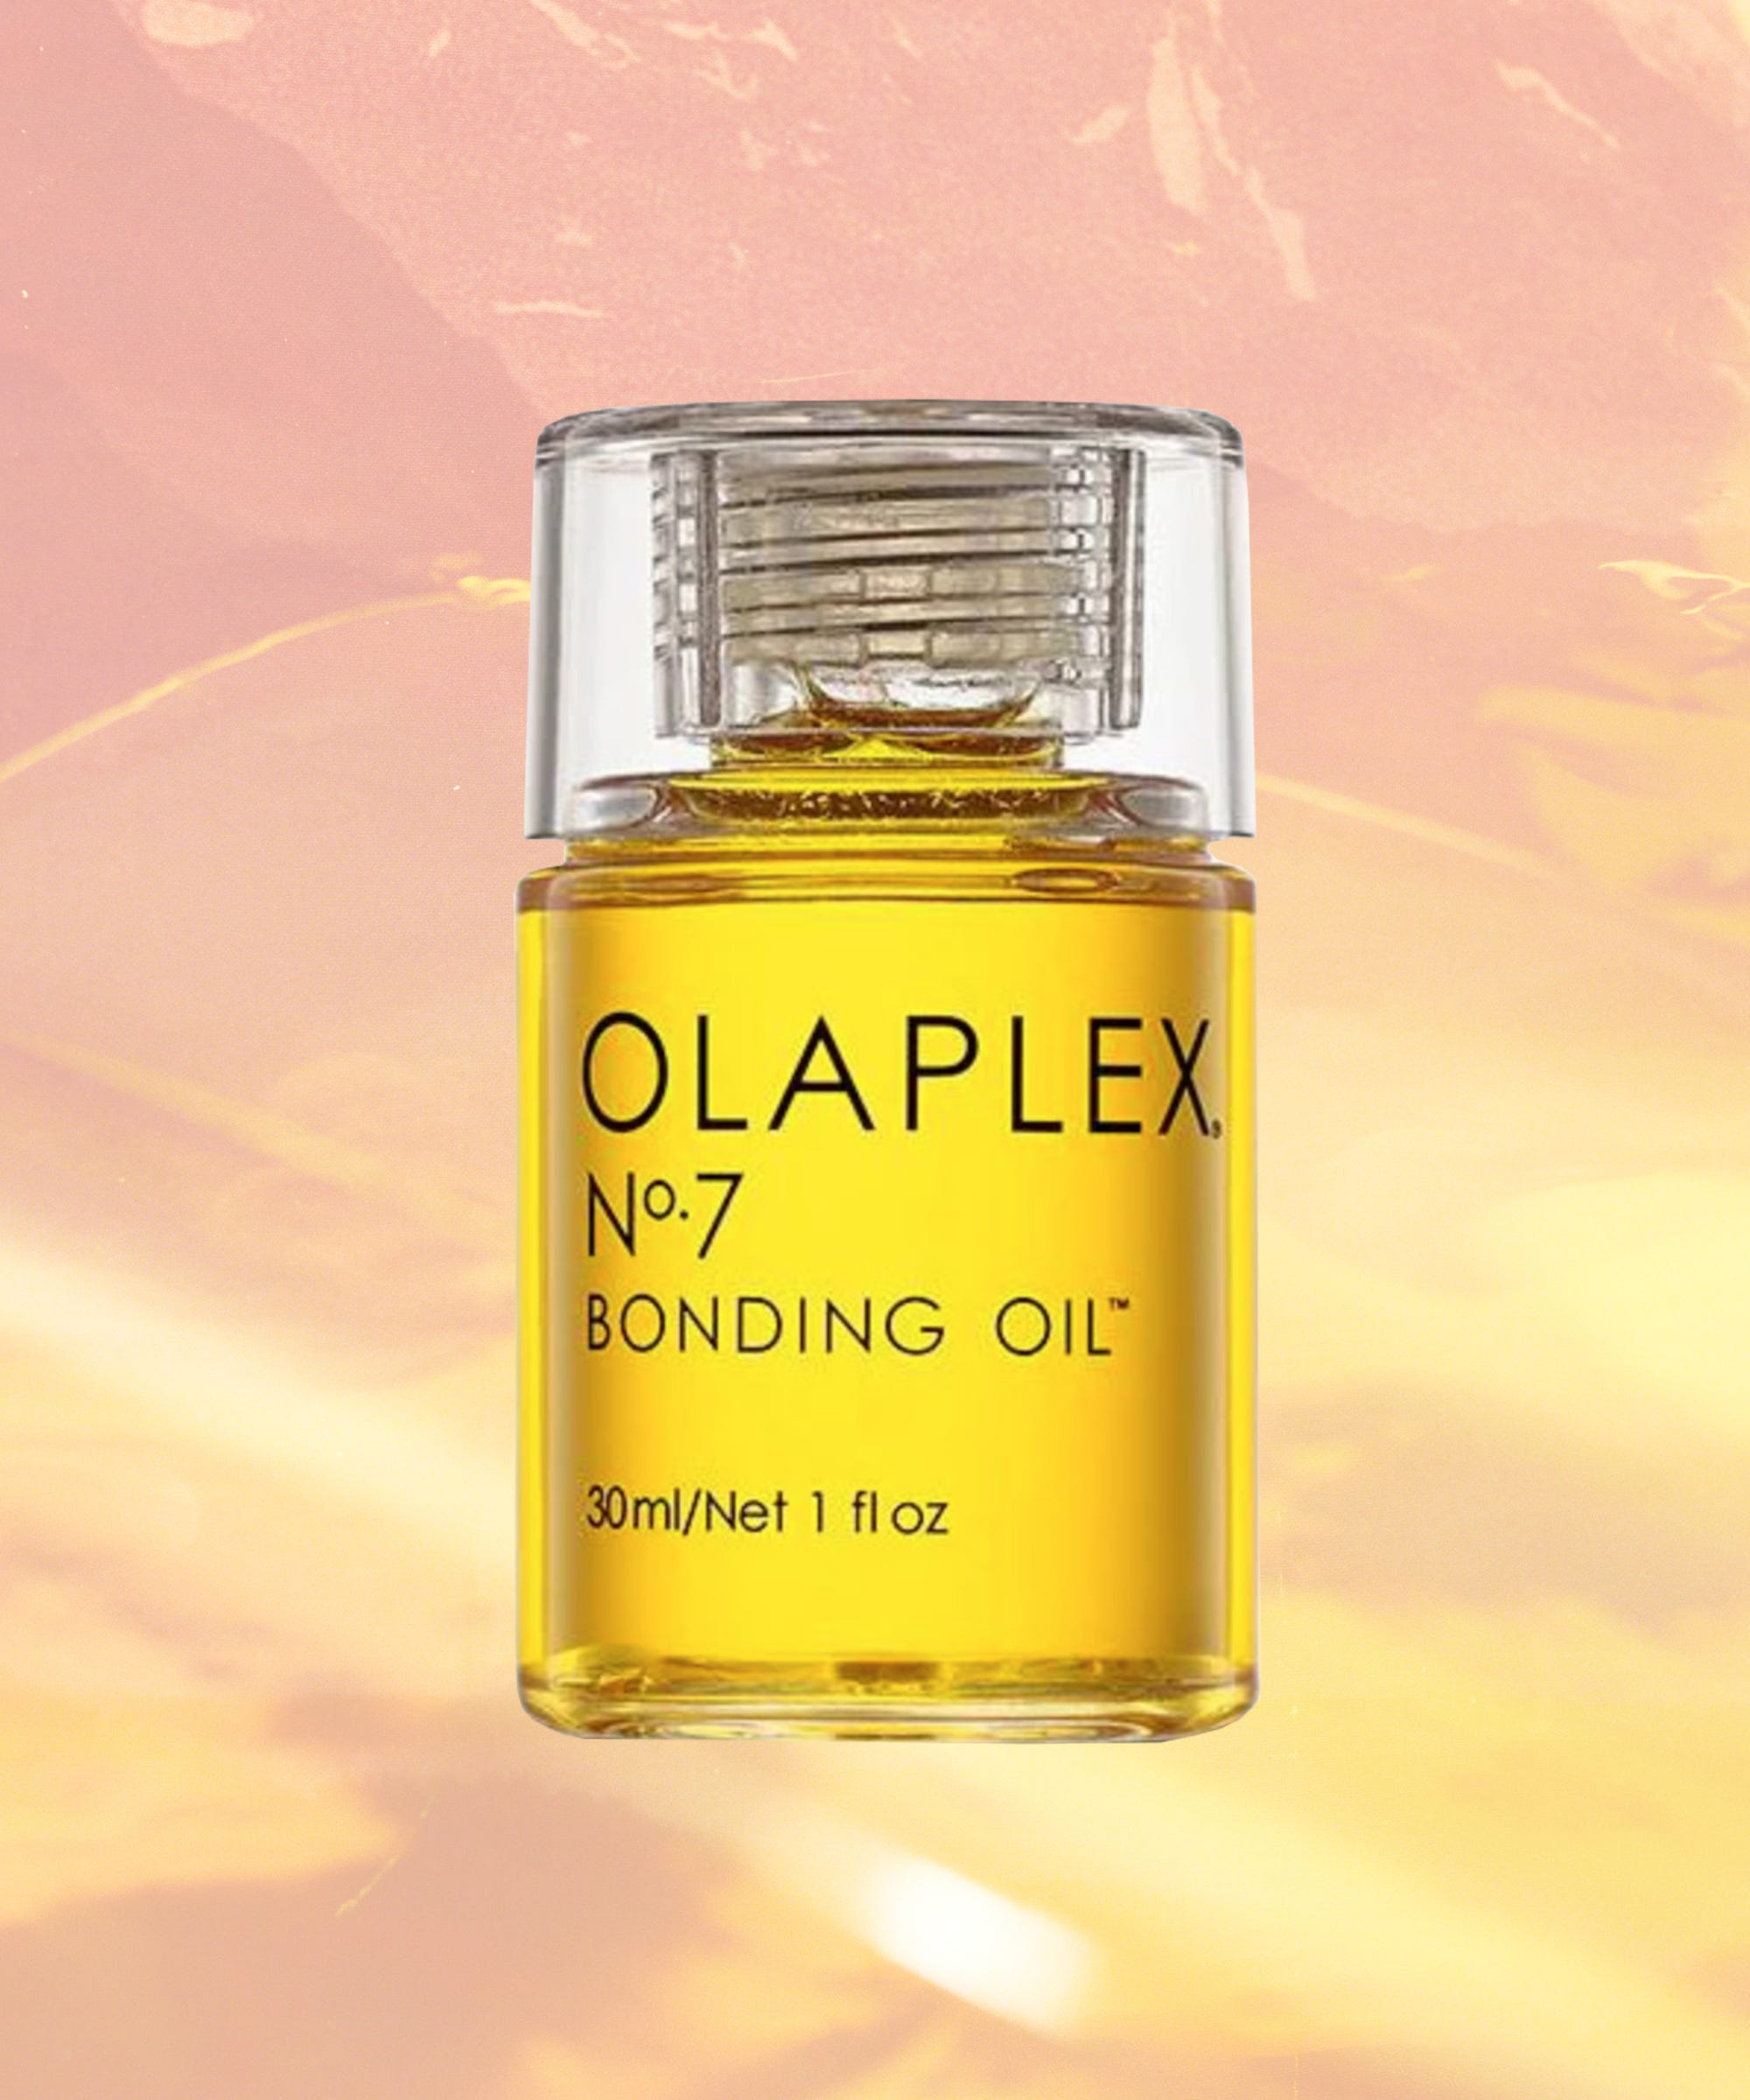 I Ditched My Blonde Hair For Good — & This £26 Oil Fixed The Damage